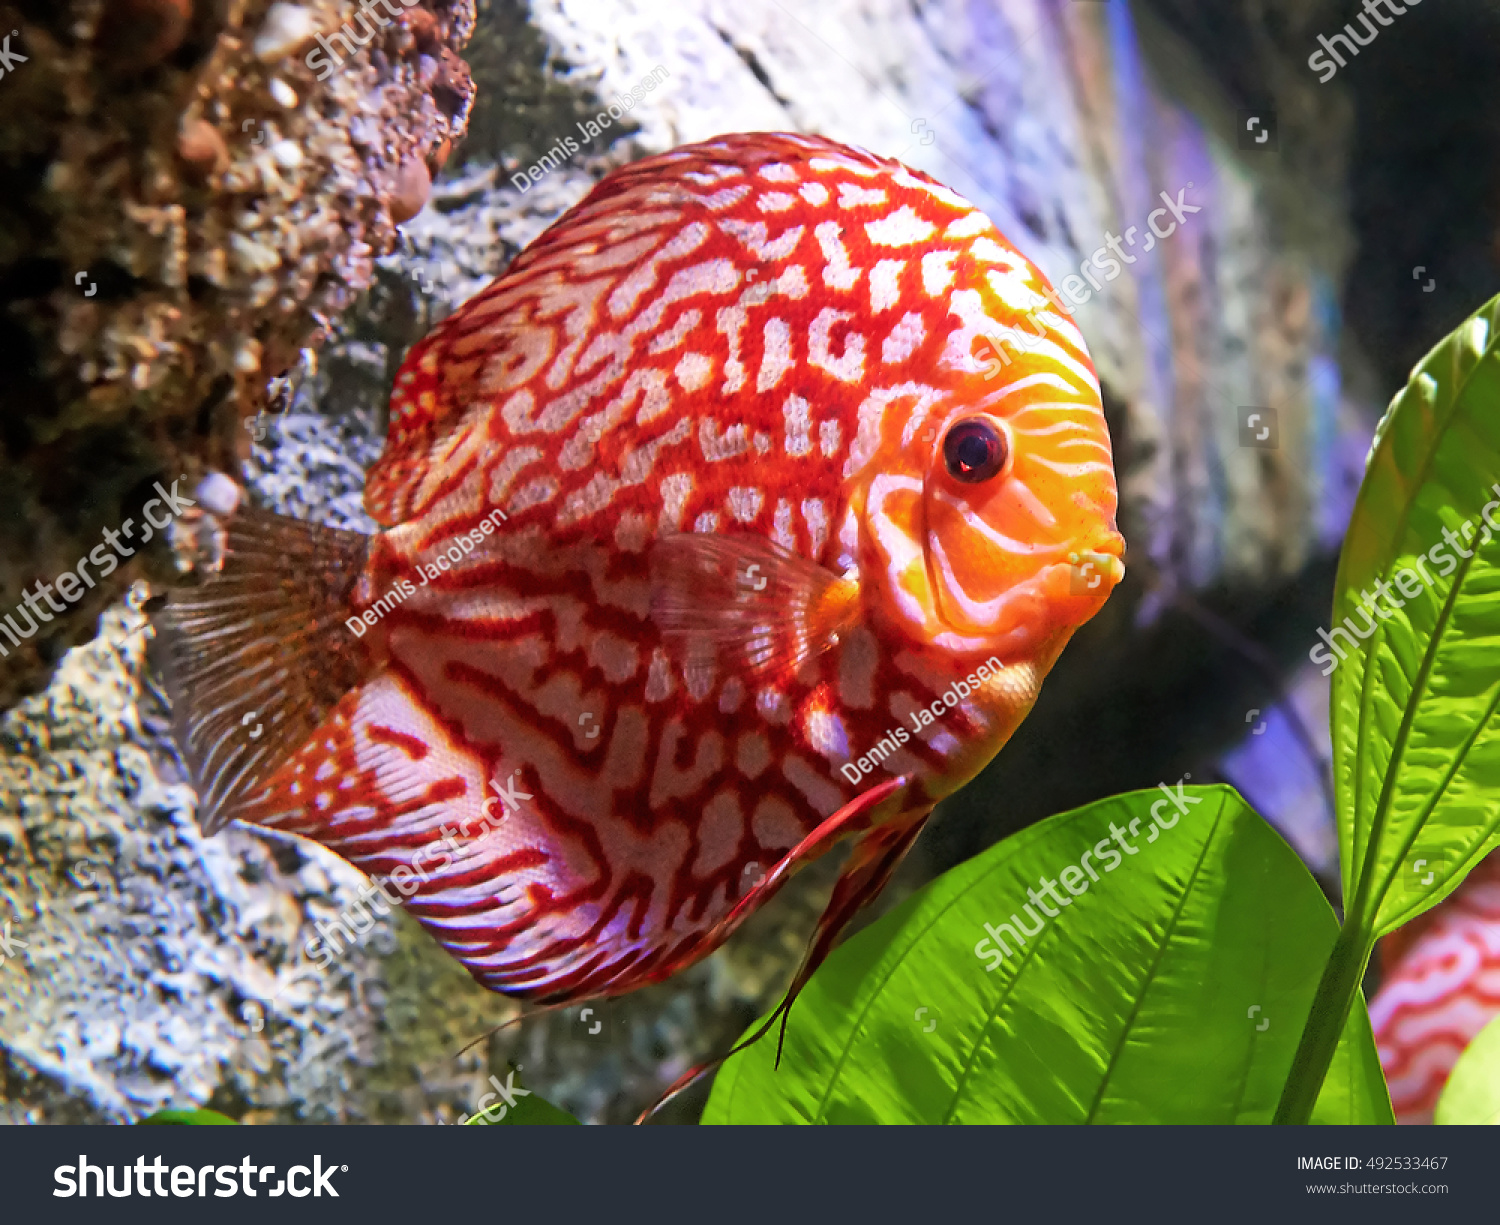 Red Pigeon Blood Discus Natural Habitat Stock Photo (Royalty Free ...